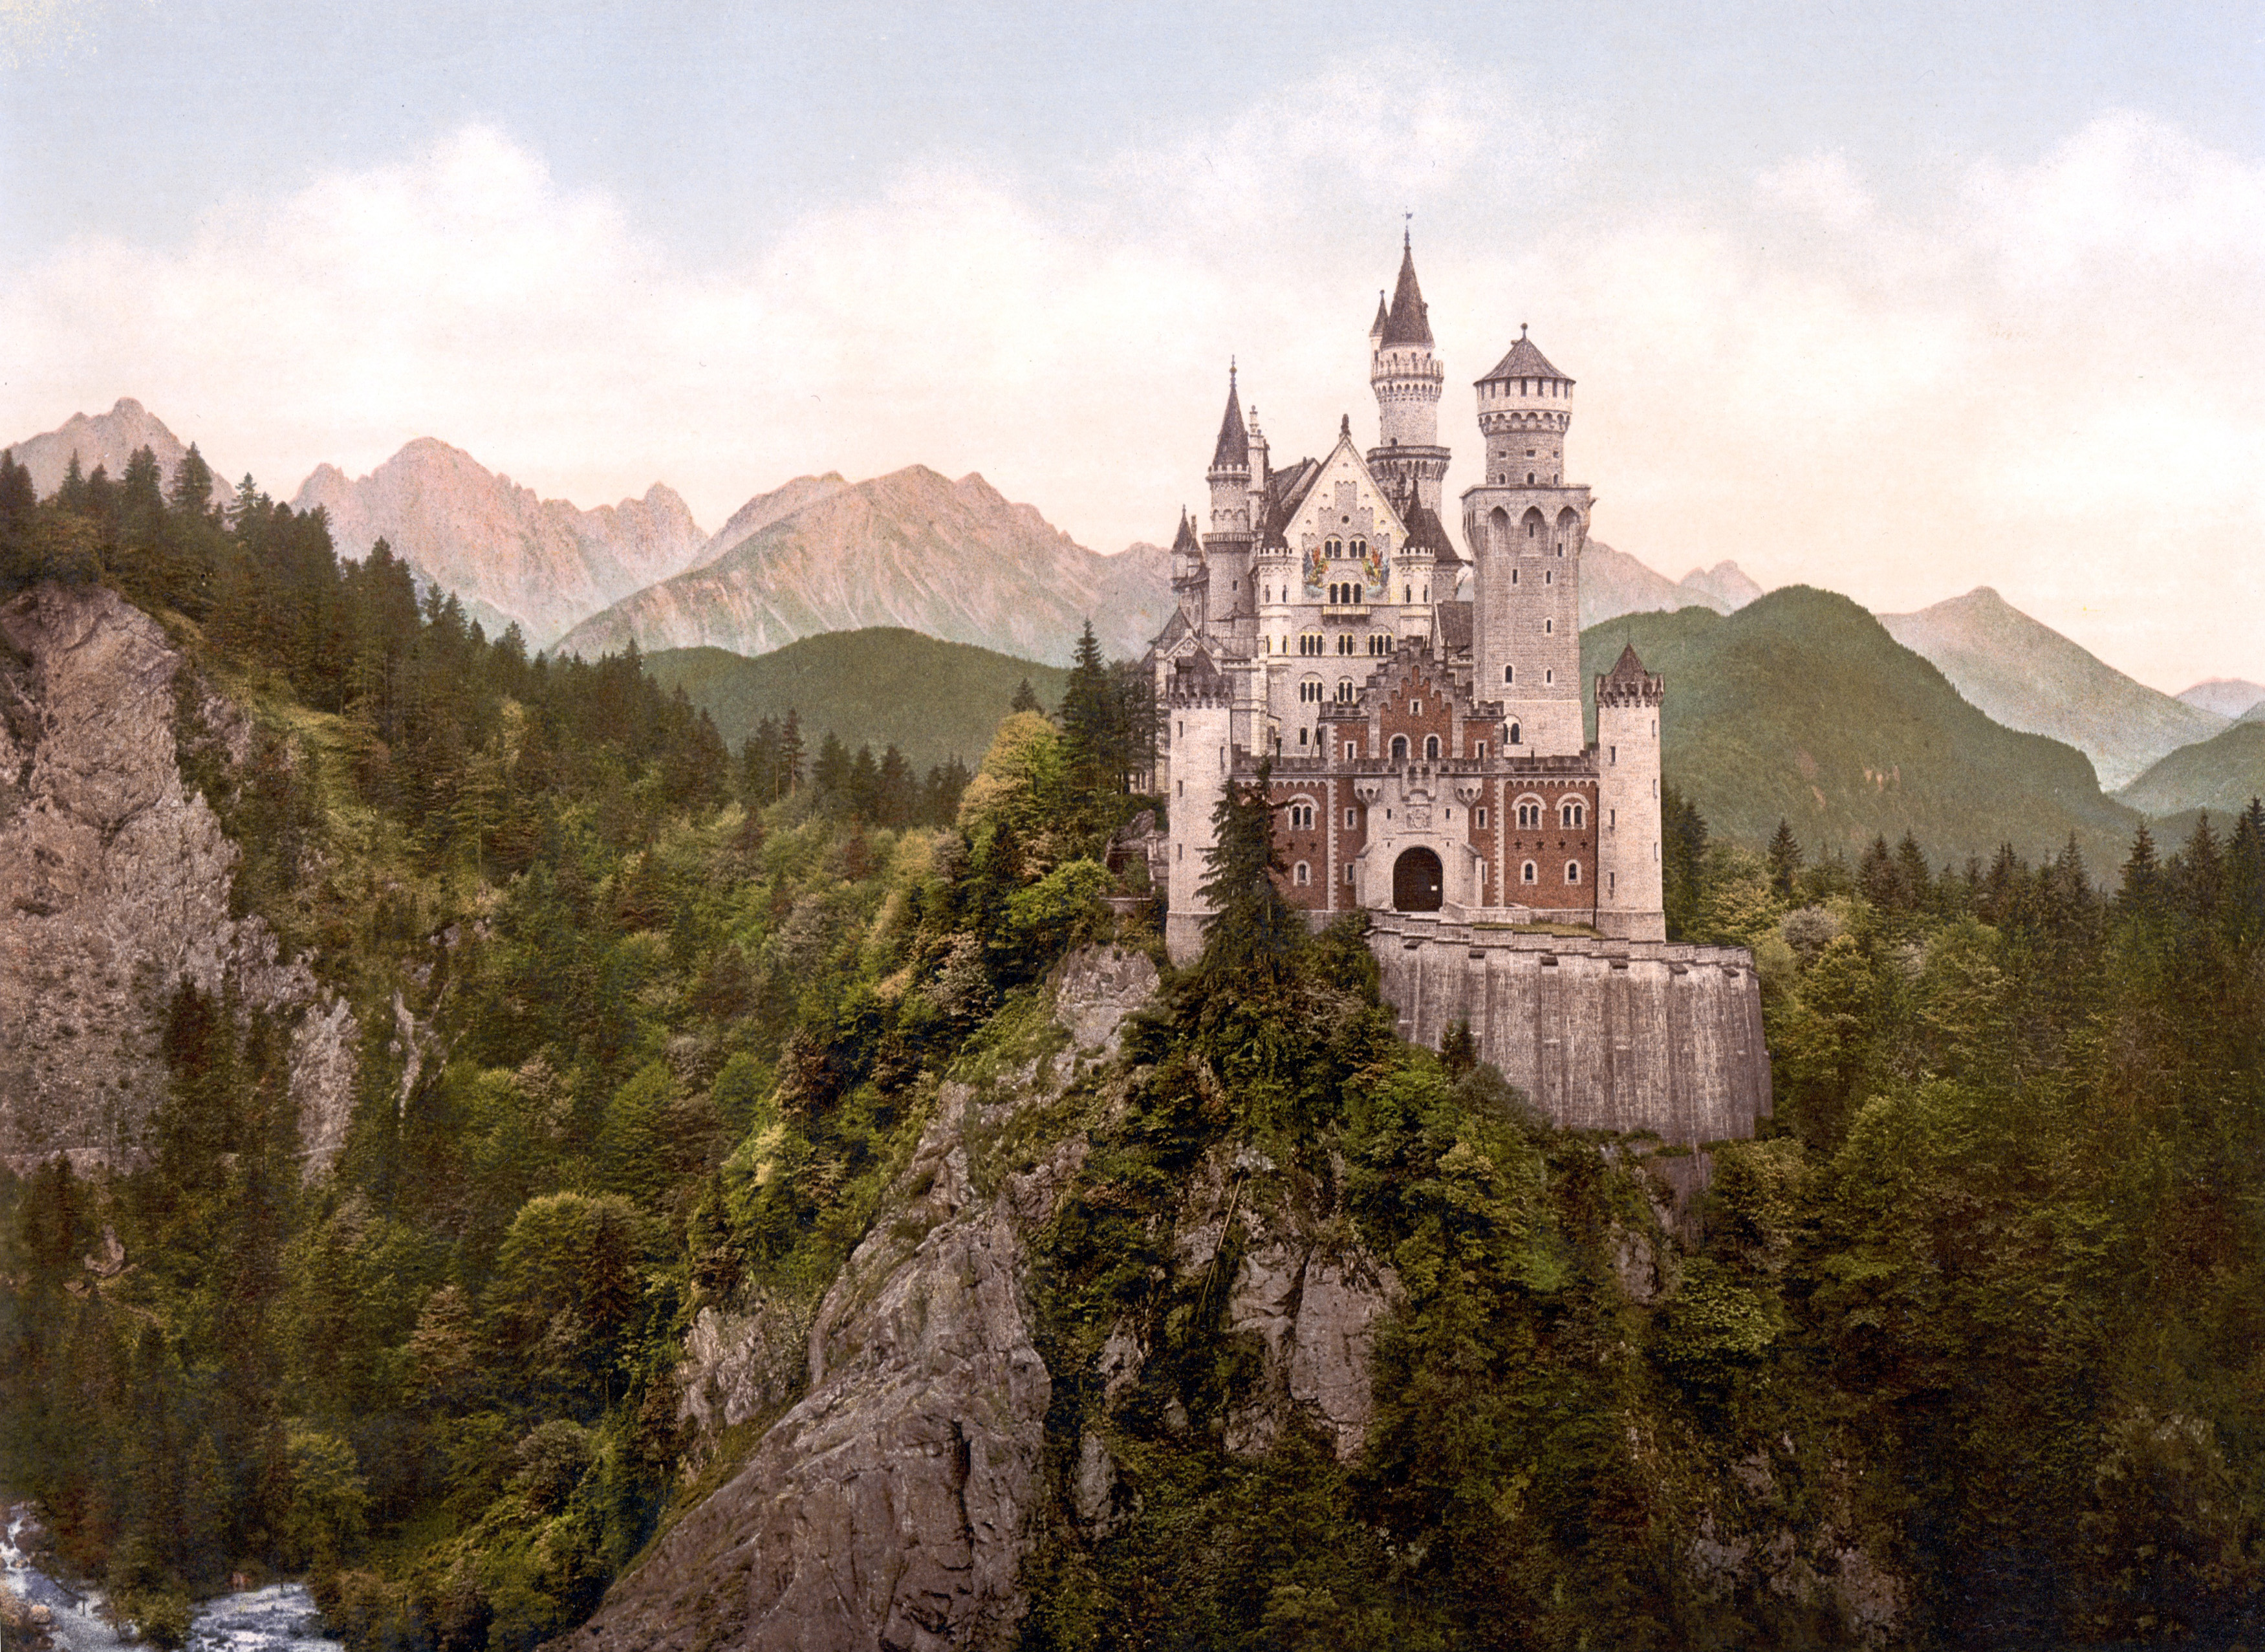 Castle on a Rock in the Woods 1155.07 Kb